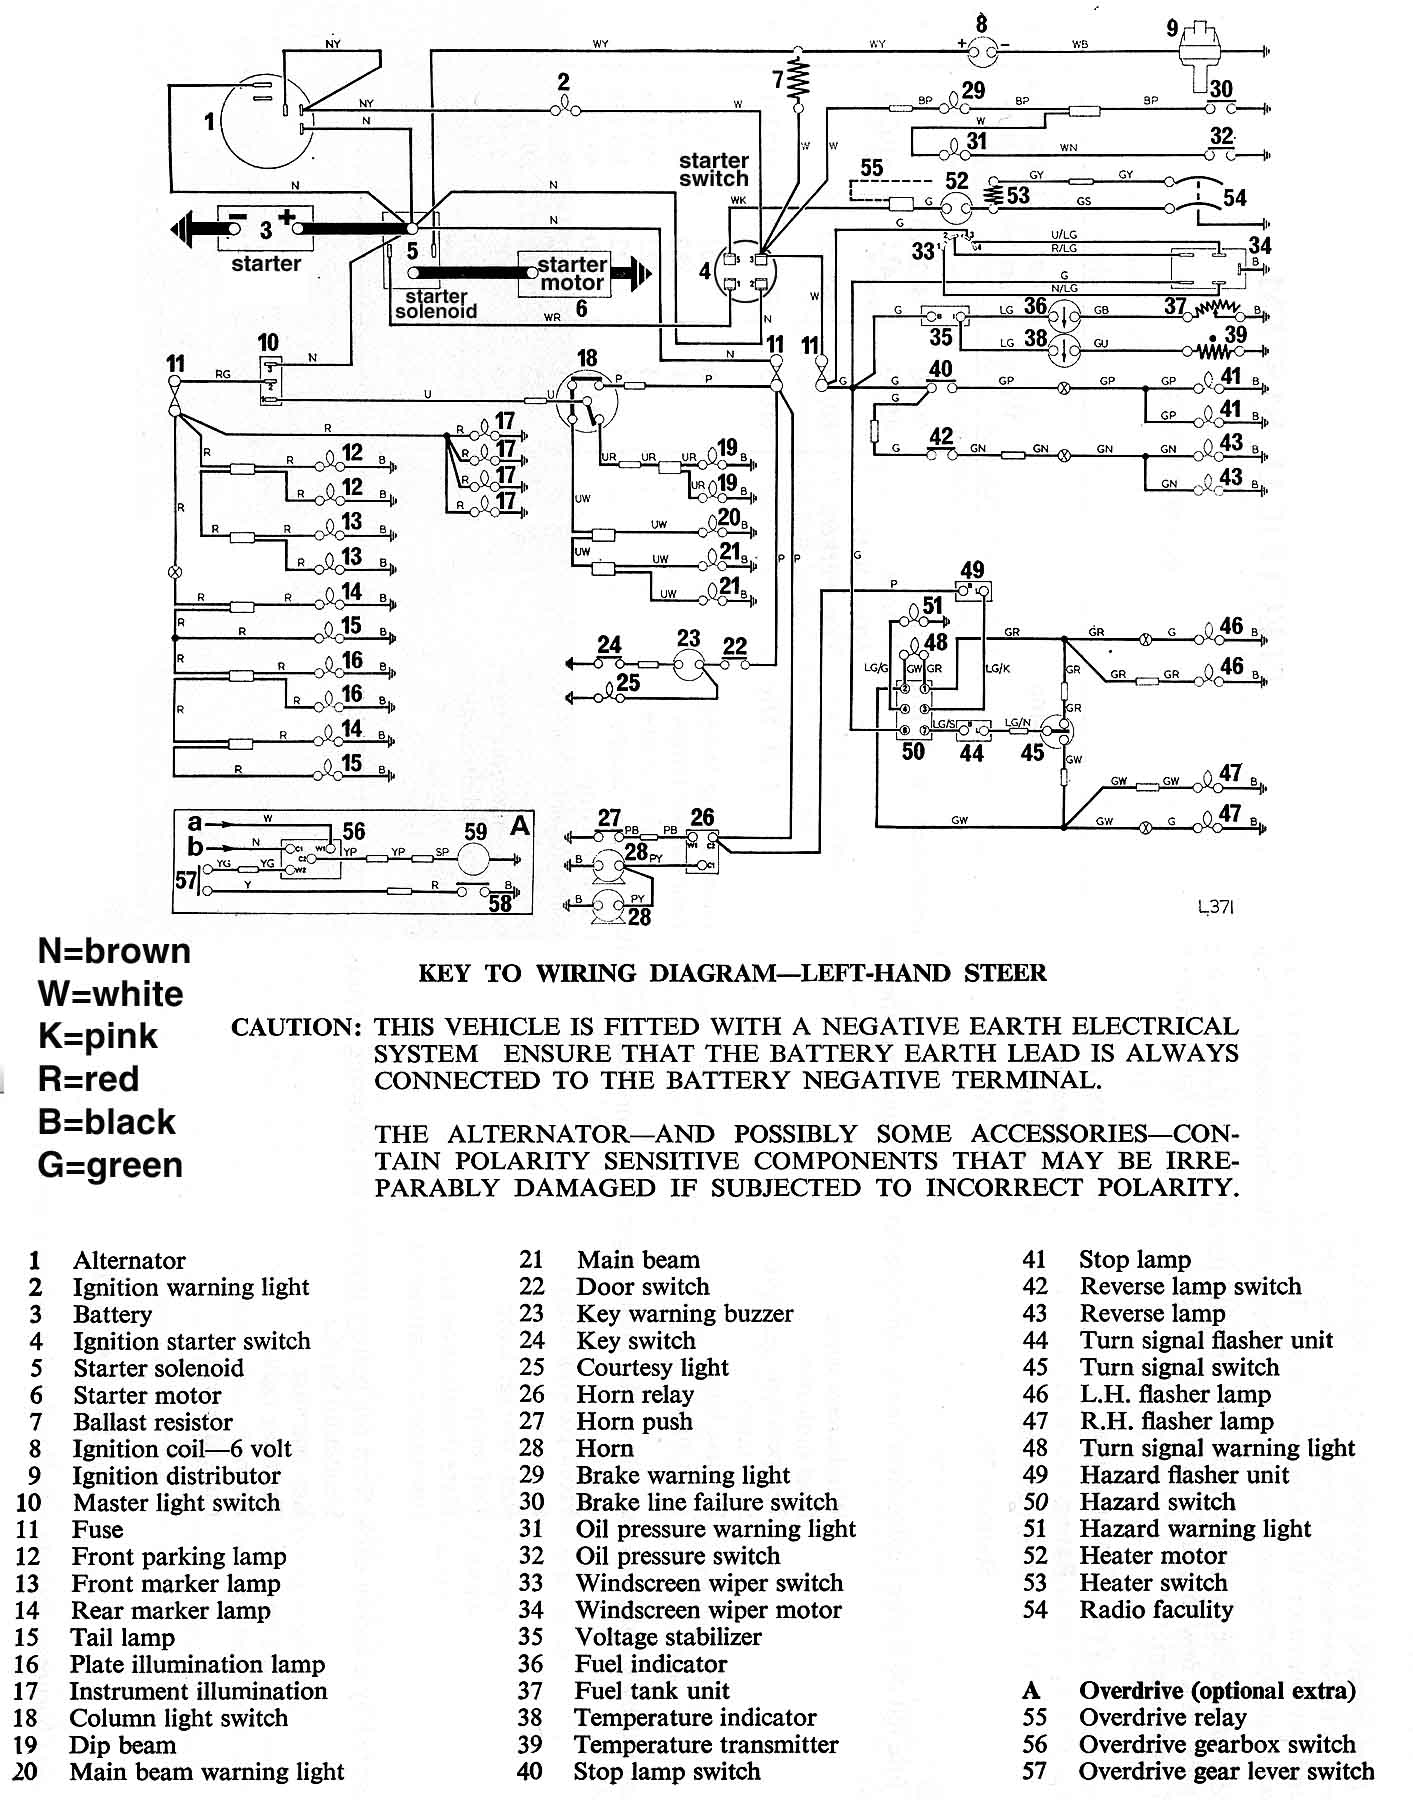 Wiring Schematics And Diagrams Triumph Spitfire Gt6 Herald Schematic Switch Diagram Mkiv From The Factory Manual